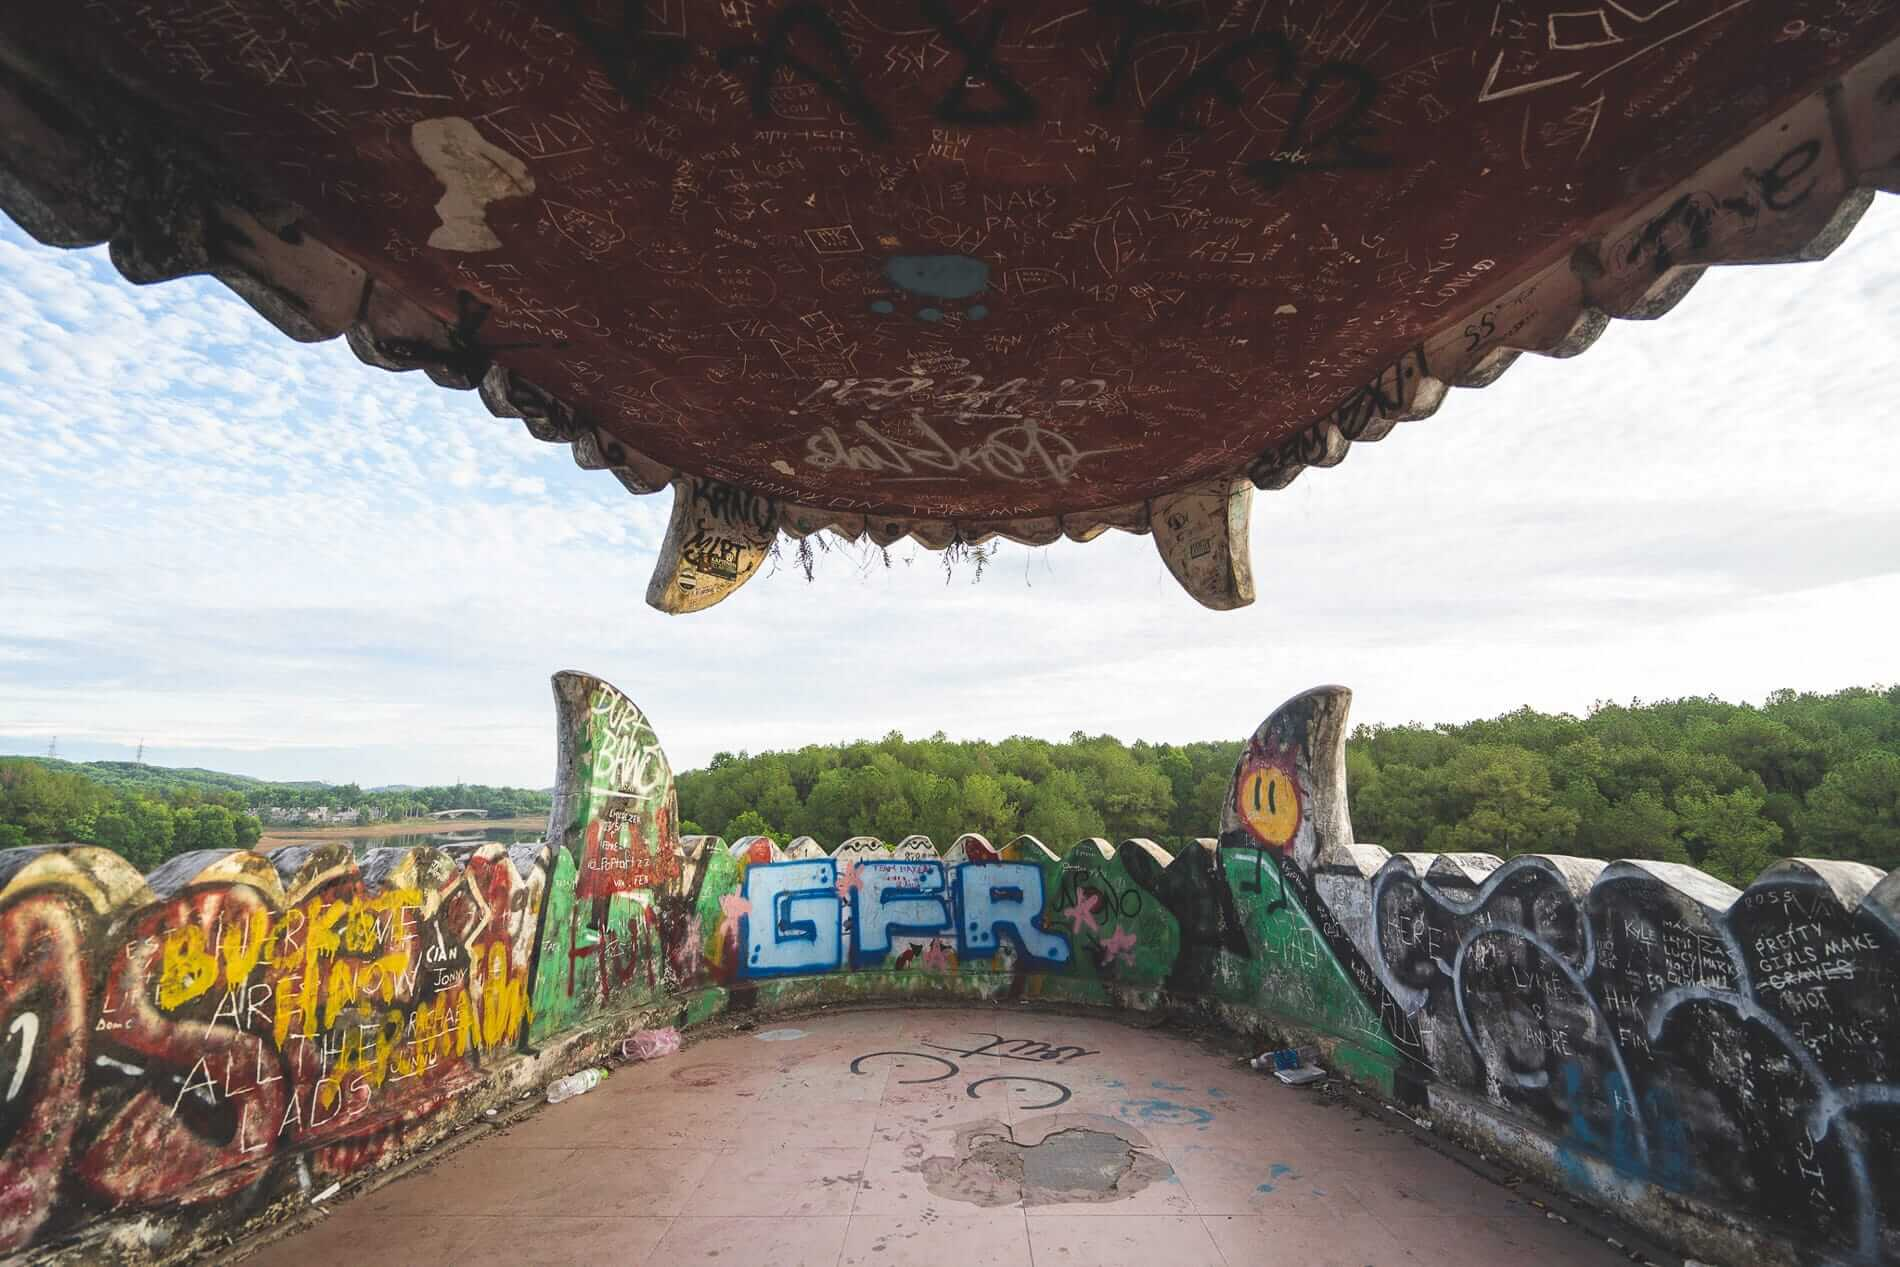 Graffiti everywhere - Hues Abandoned Water Park